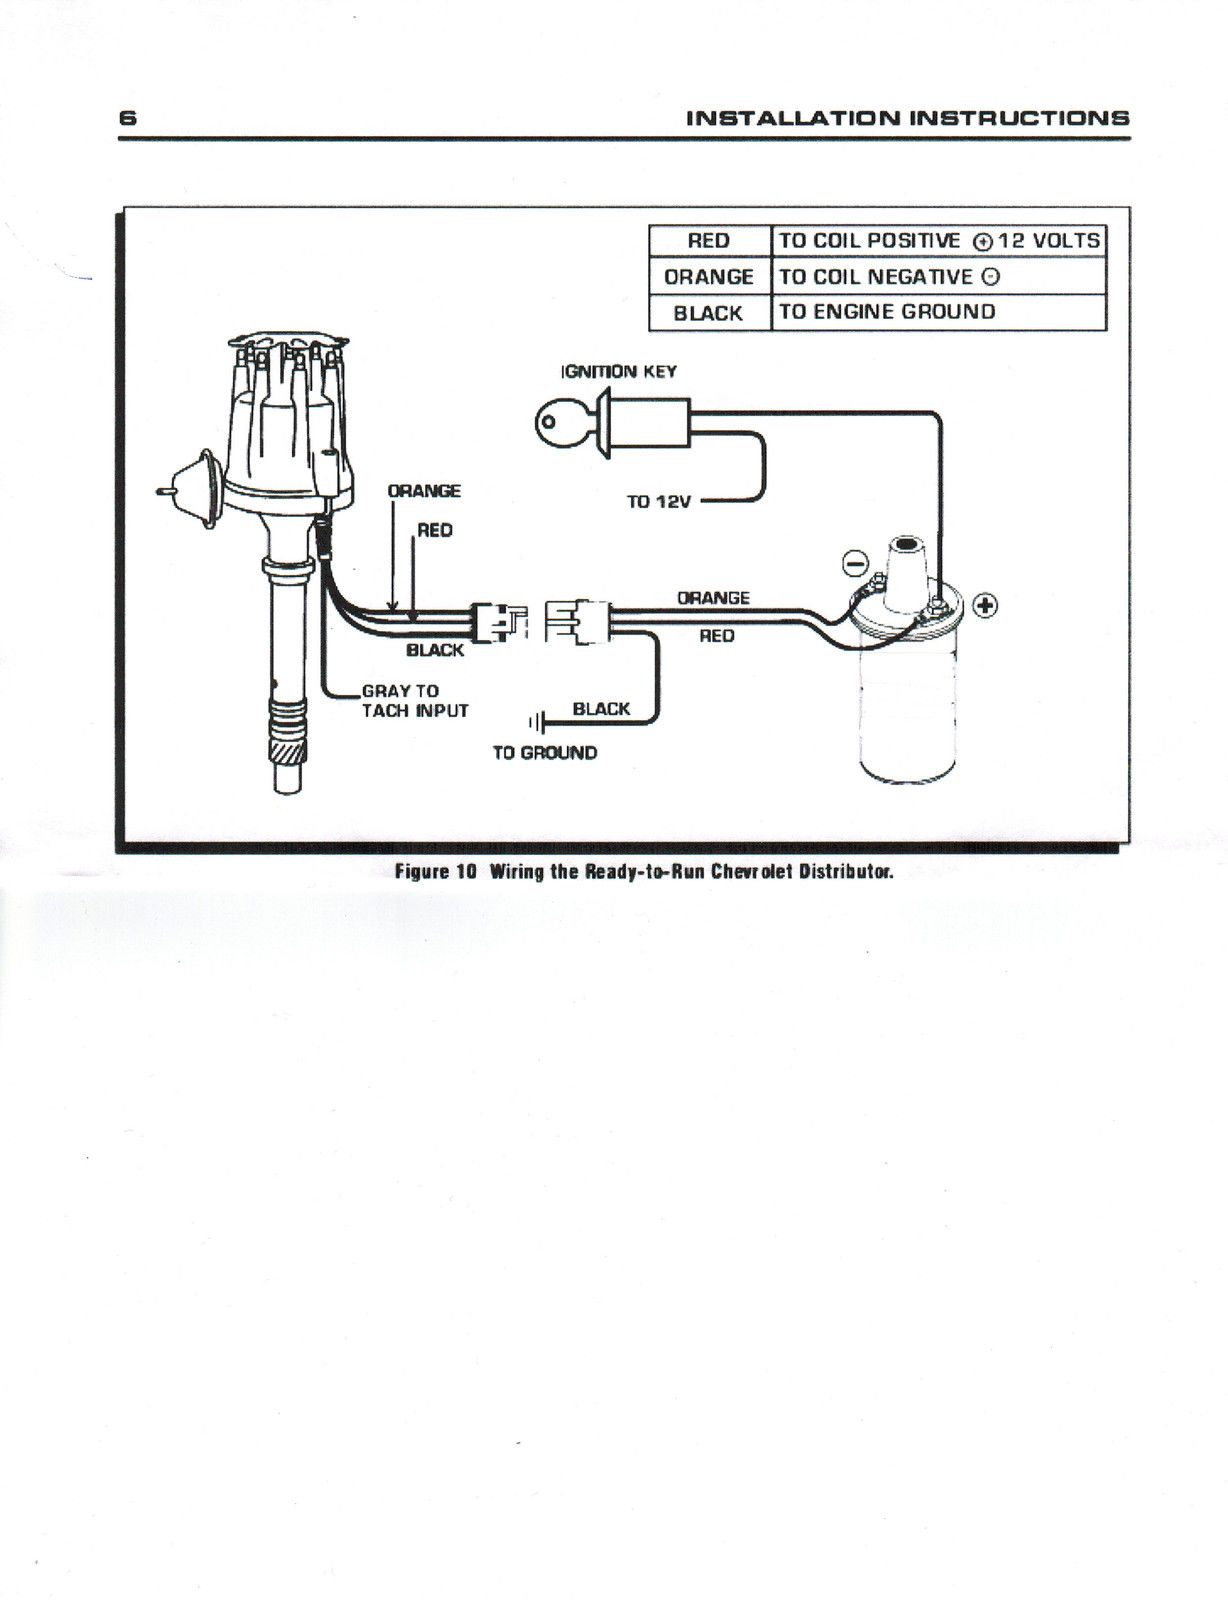 Electronic Ignition Distributor Wiring Diagram from swapmeetparts.com